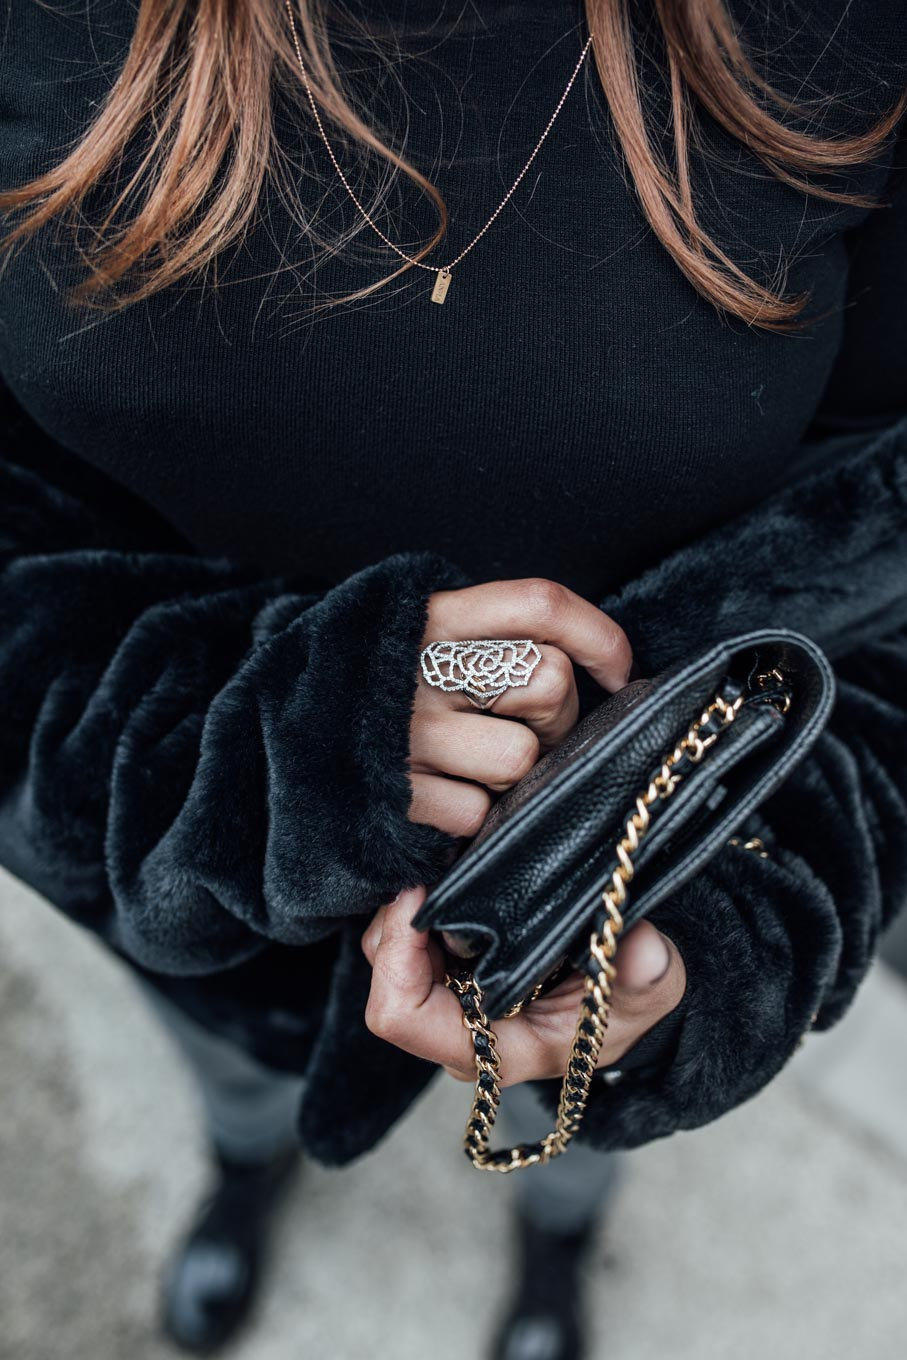 Outfit: Must Have Of The Season: Black Turtleneck   Closes Pedal Pusher Jeans, Chanel Wallet On Chain WOC, Dr. Martens Boots, Nomade Moderne Hat, Leo Mathild Jewelry   you rock my life